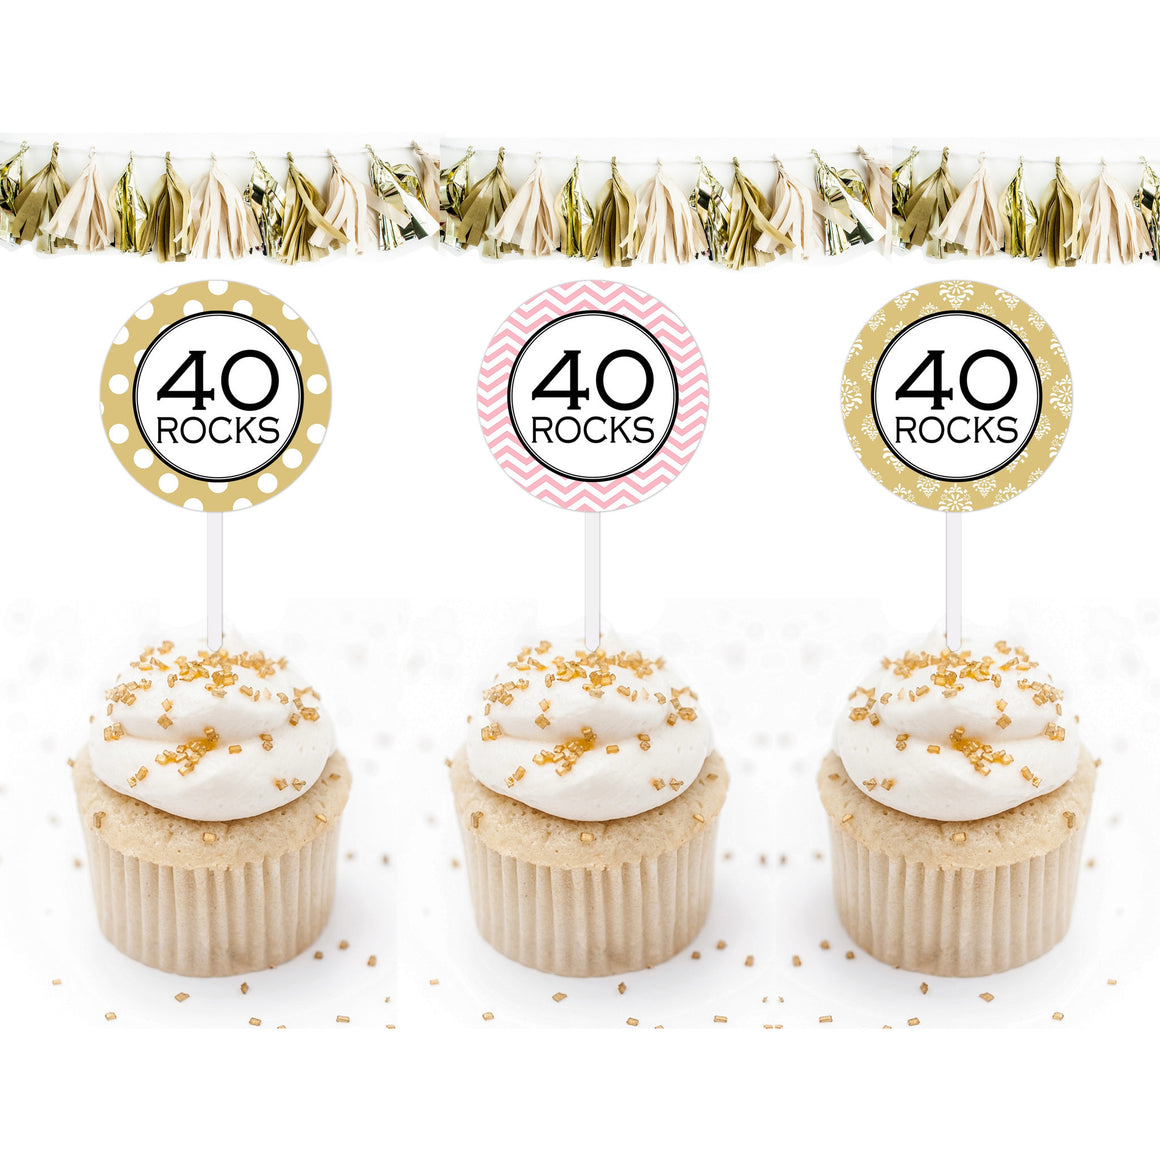 Printable 40th Birthday, 40 Rocks Cupcake Toppers, & Party Favor Tags by SUNSHINETULIPDESIGN - Sunshinetulipdesign - 1